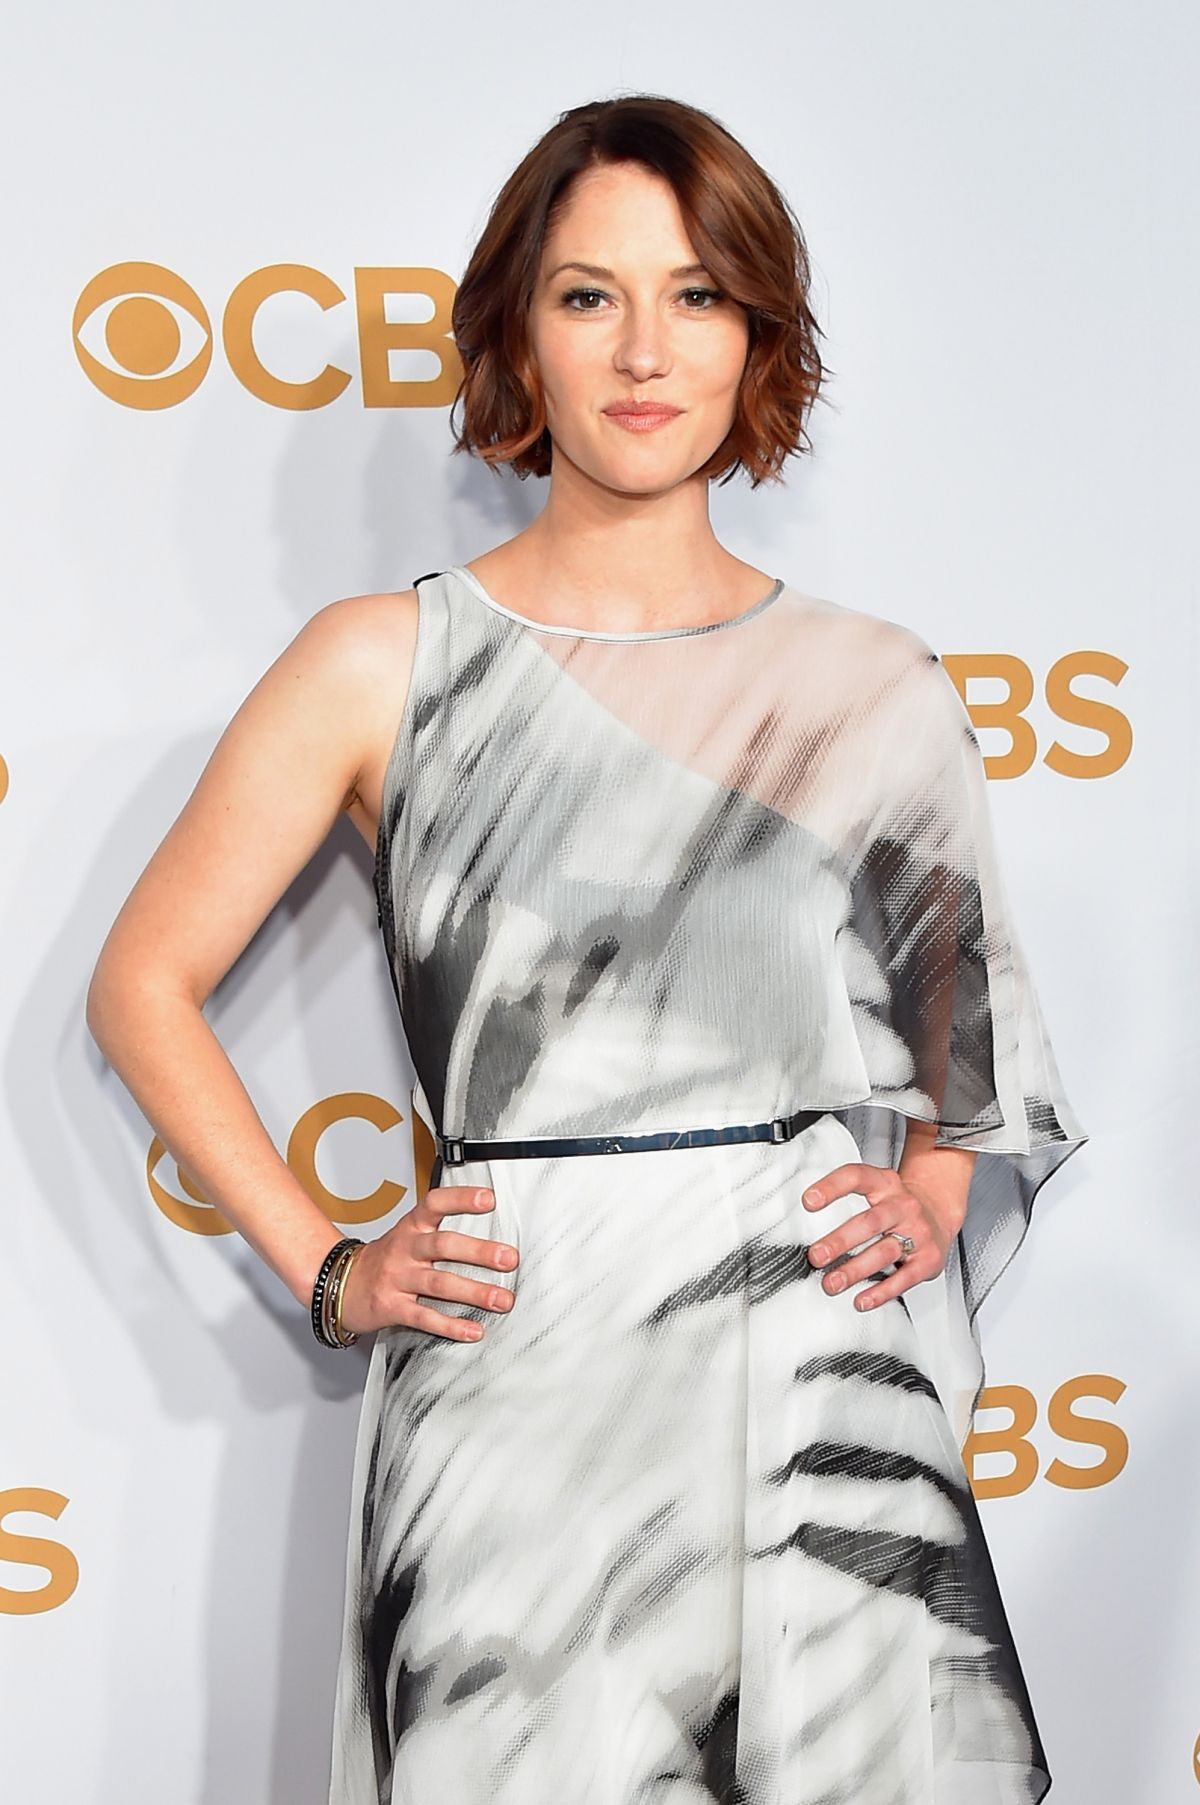 CHYLER LEIGH at 2015 CBS Upfront in New York